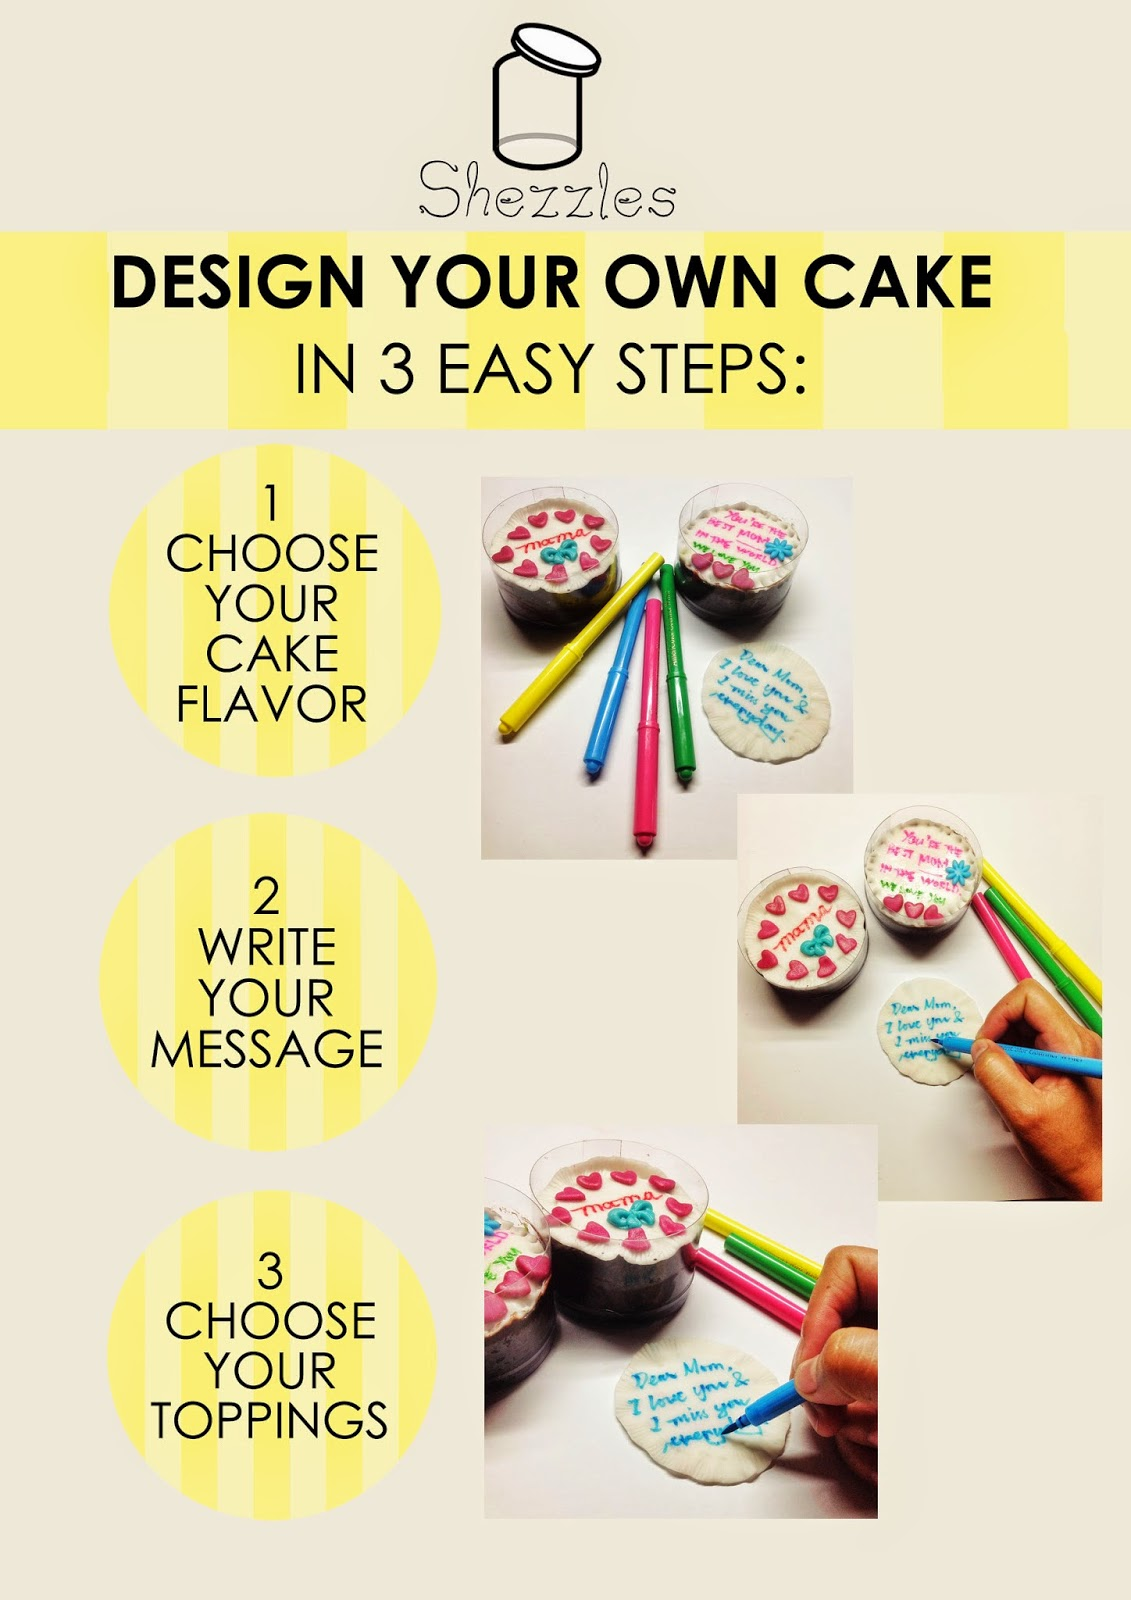 Design Your Own Photo Cake : Shezzles Dessert in a jar: Design Your Own Cake This ...